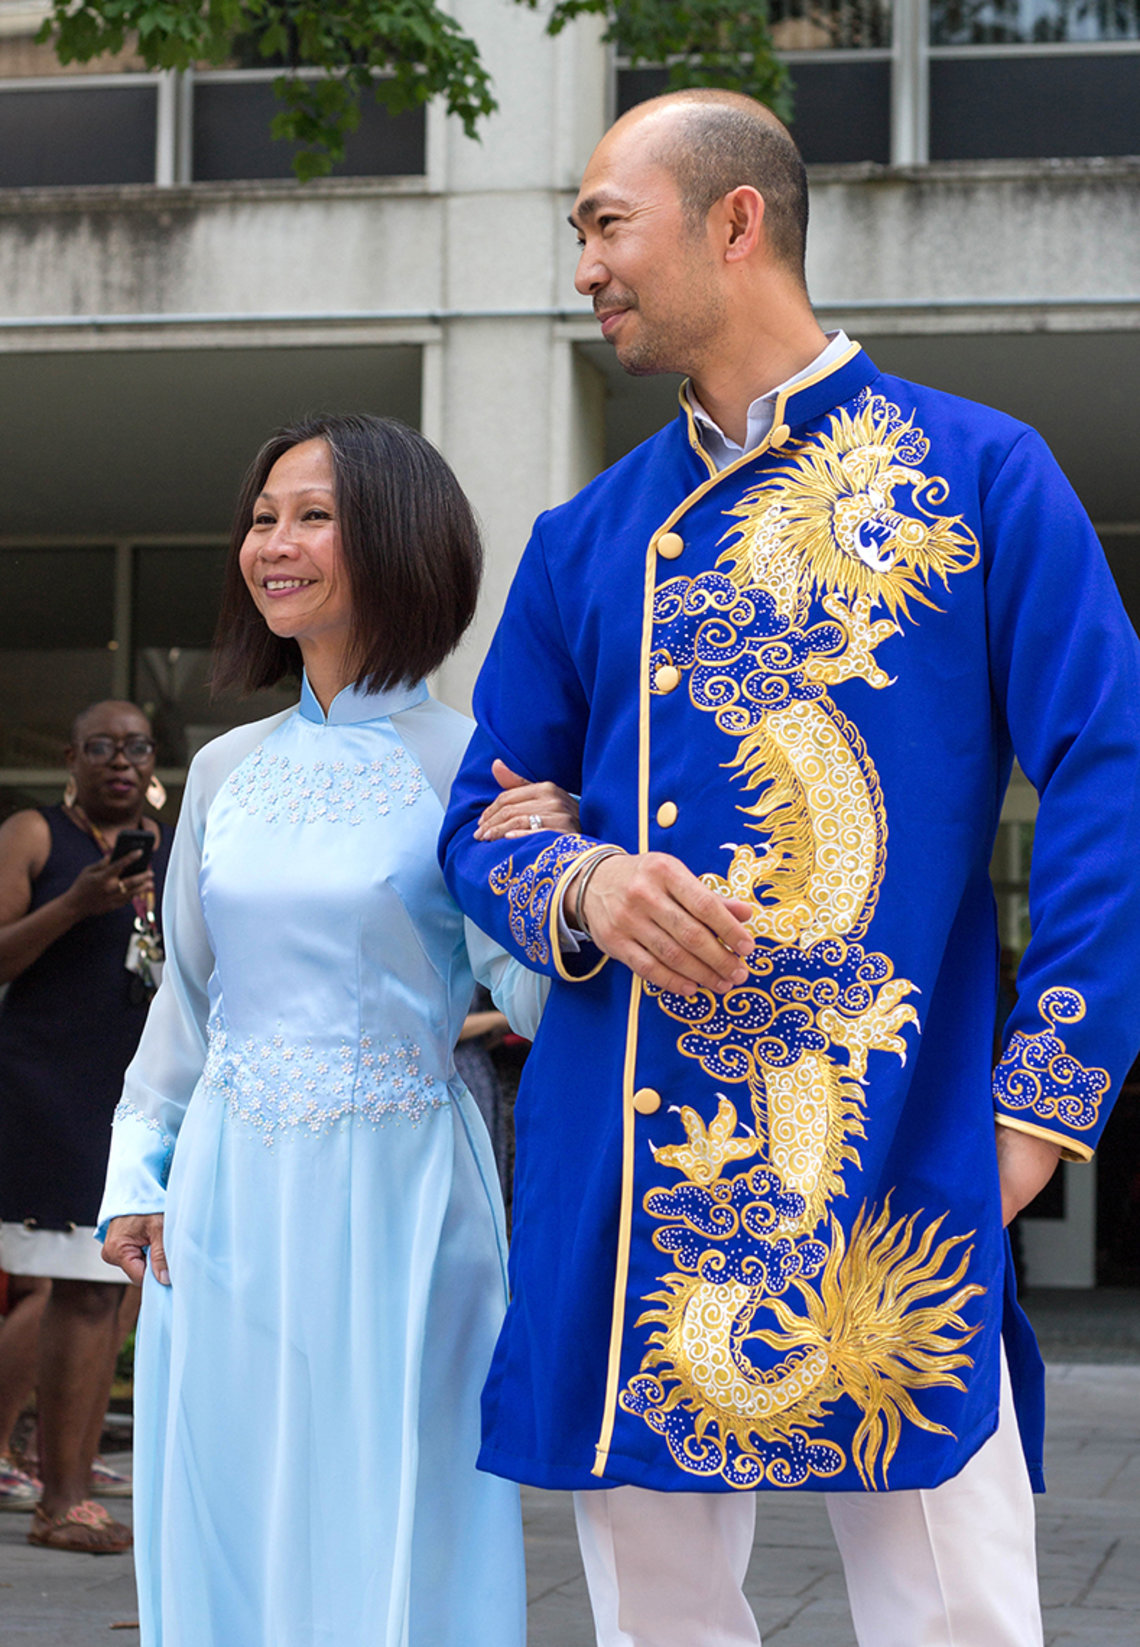 Lonnie Lisle and Jimmy Do wear the Vietnamese ao dai.